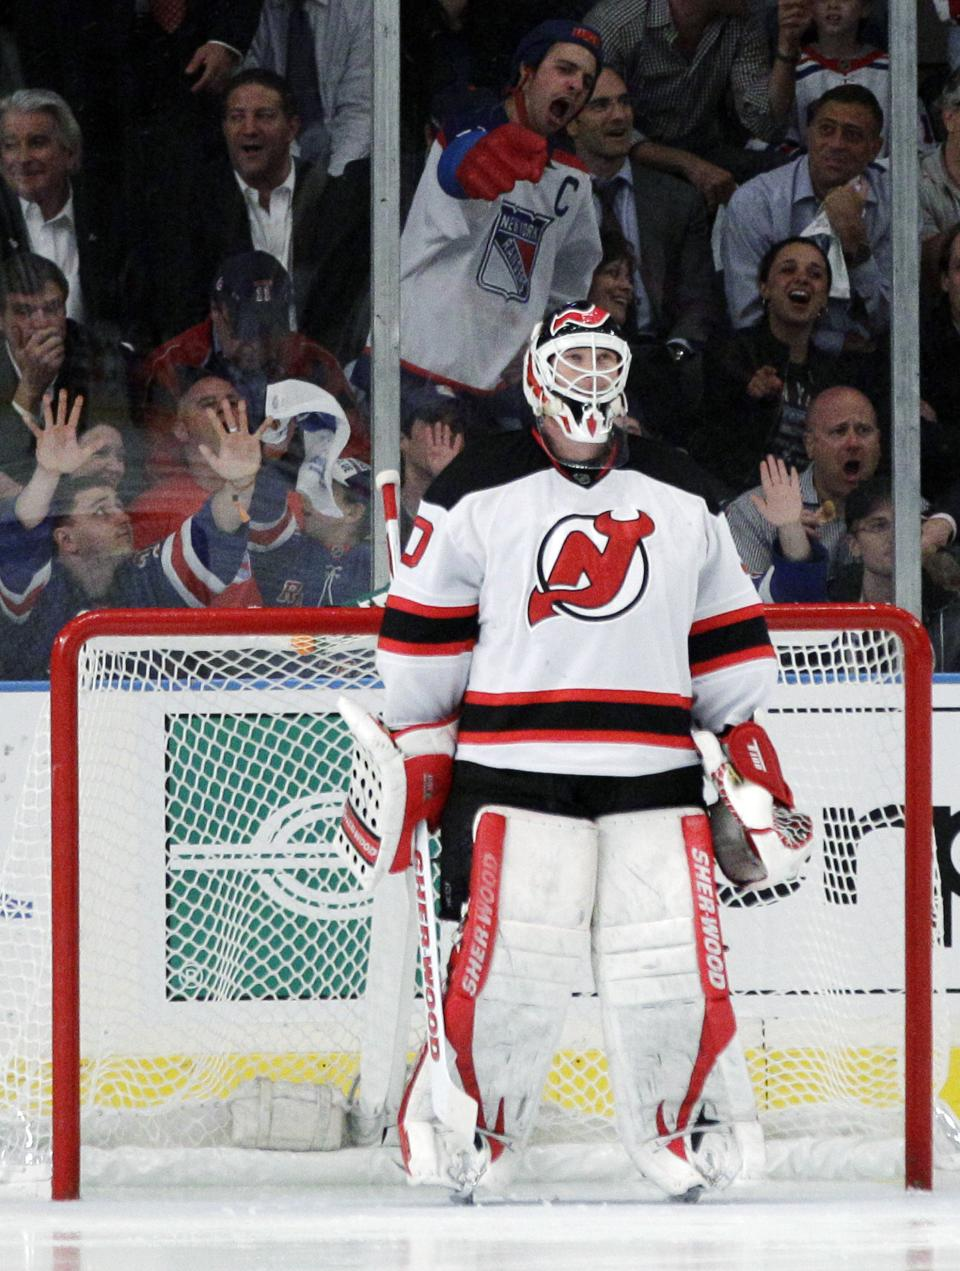 New Jersey Devils goalie Martin Brodeur is jeered by New York Rangers fans during the third period of Game 5 of an NHL hockey Stanley Cup Eastern Conference final playoff series, Wednesday, May 23, 2012, in New York. (AP Photo/Frank Franklin II)